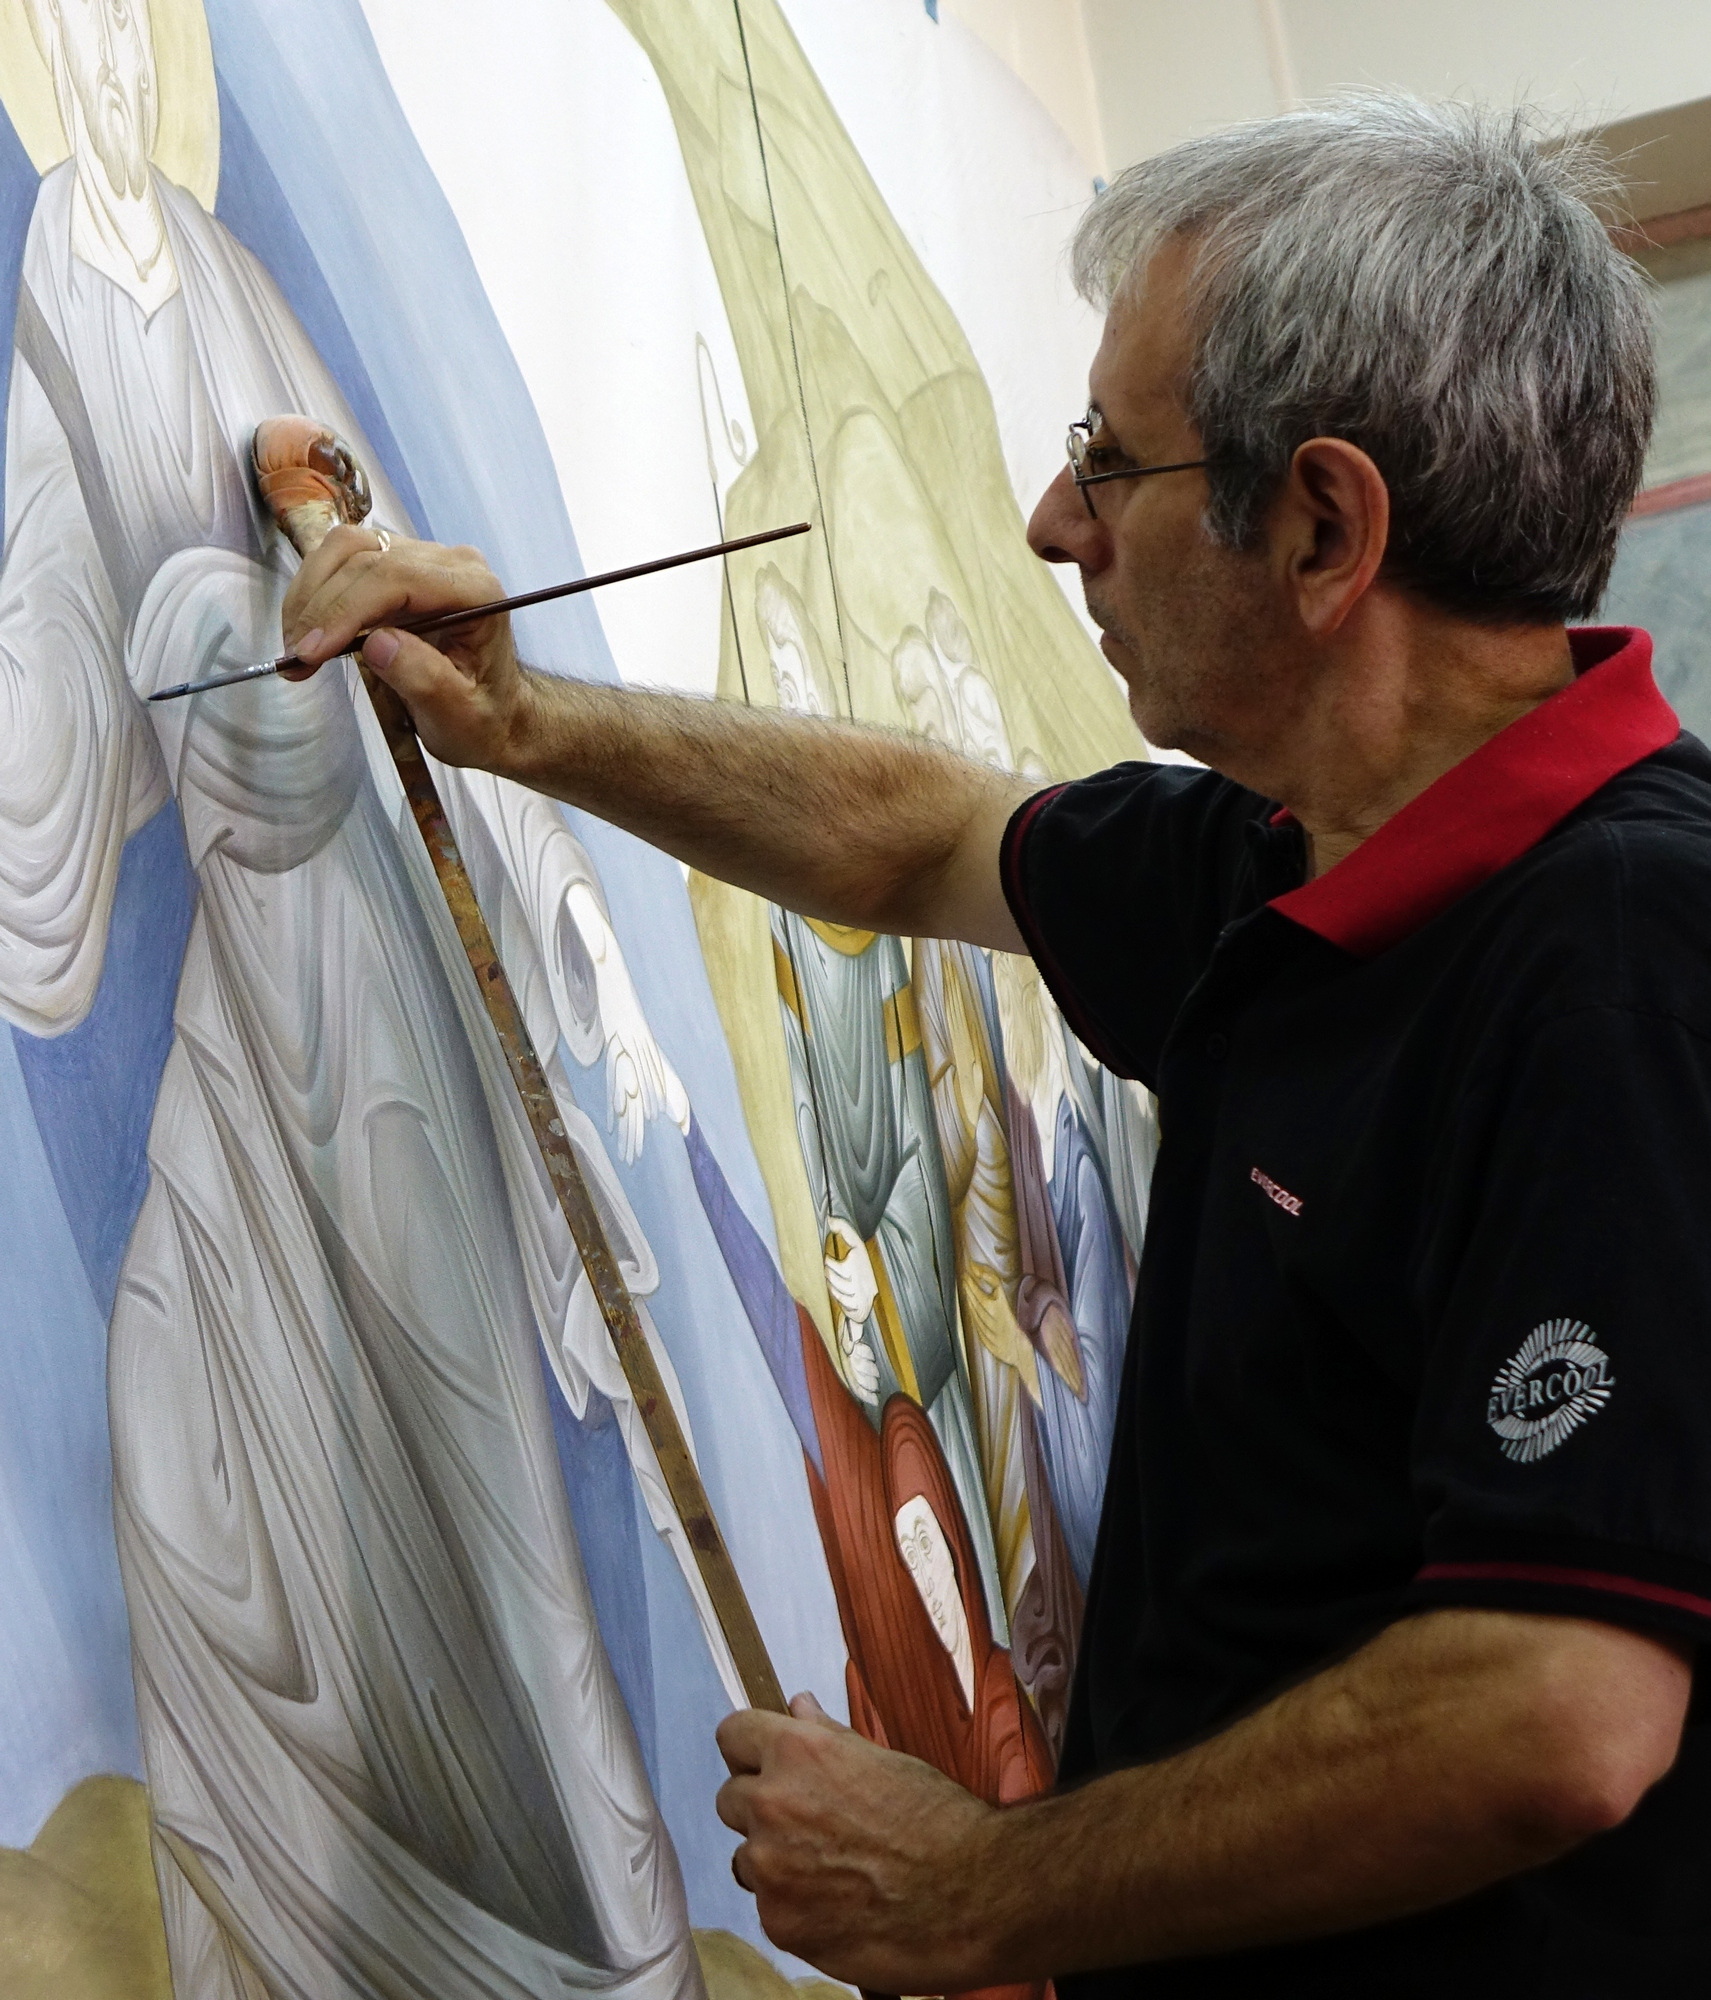 Albanian iconographer at work